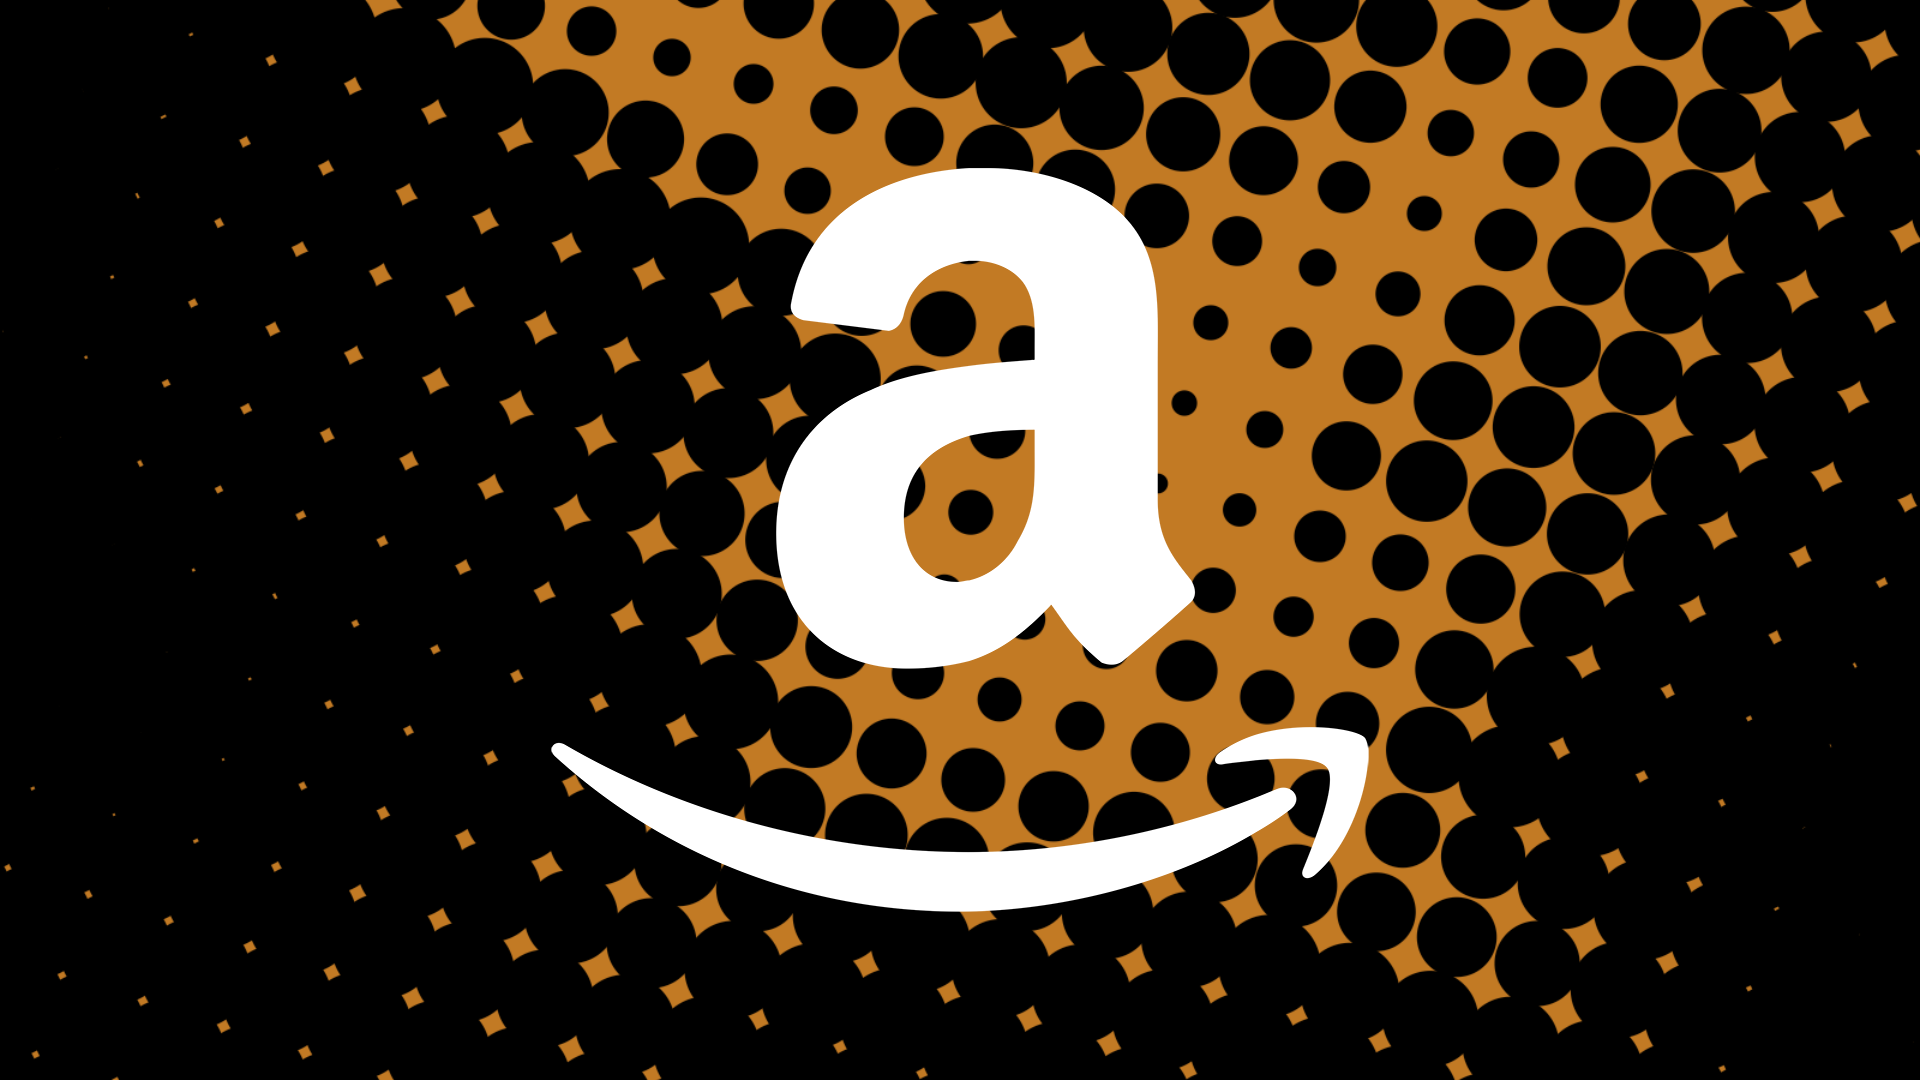 amazon home wallpaper